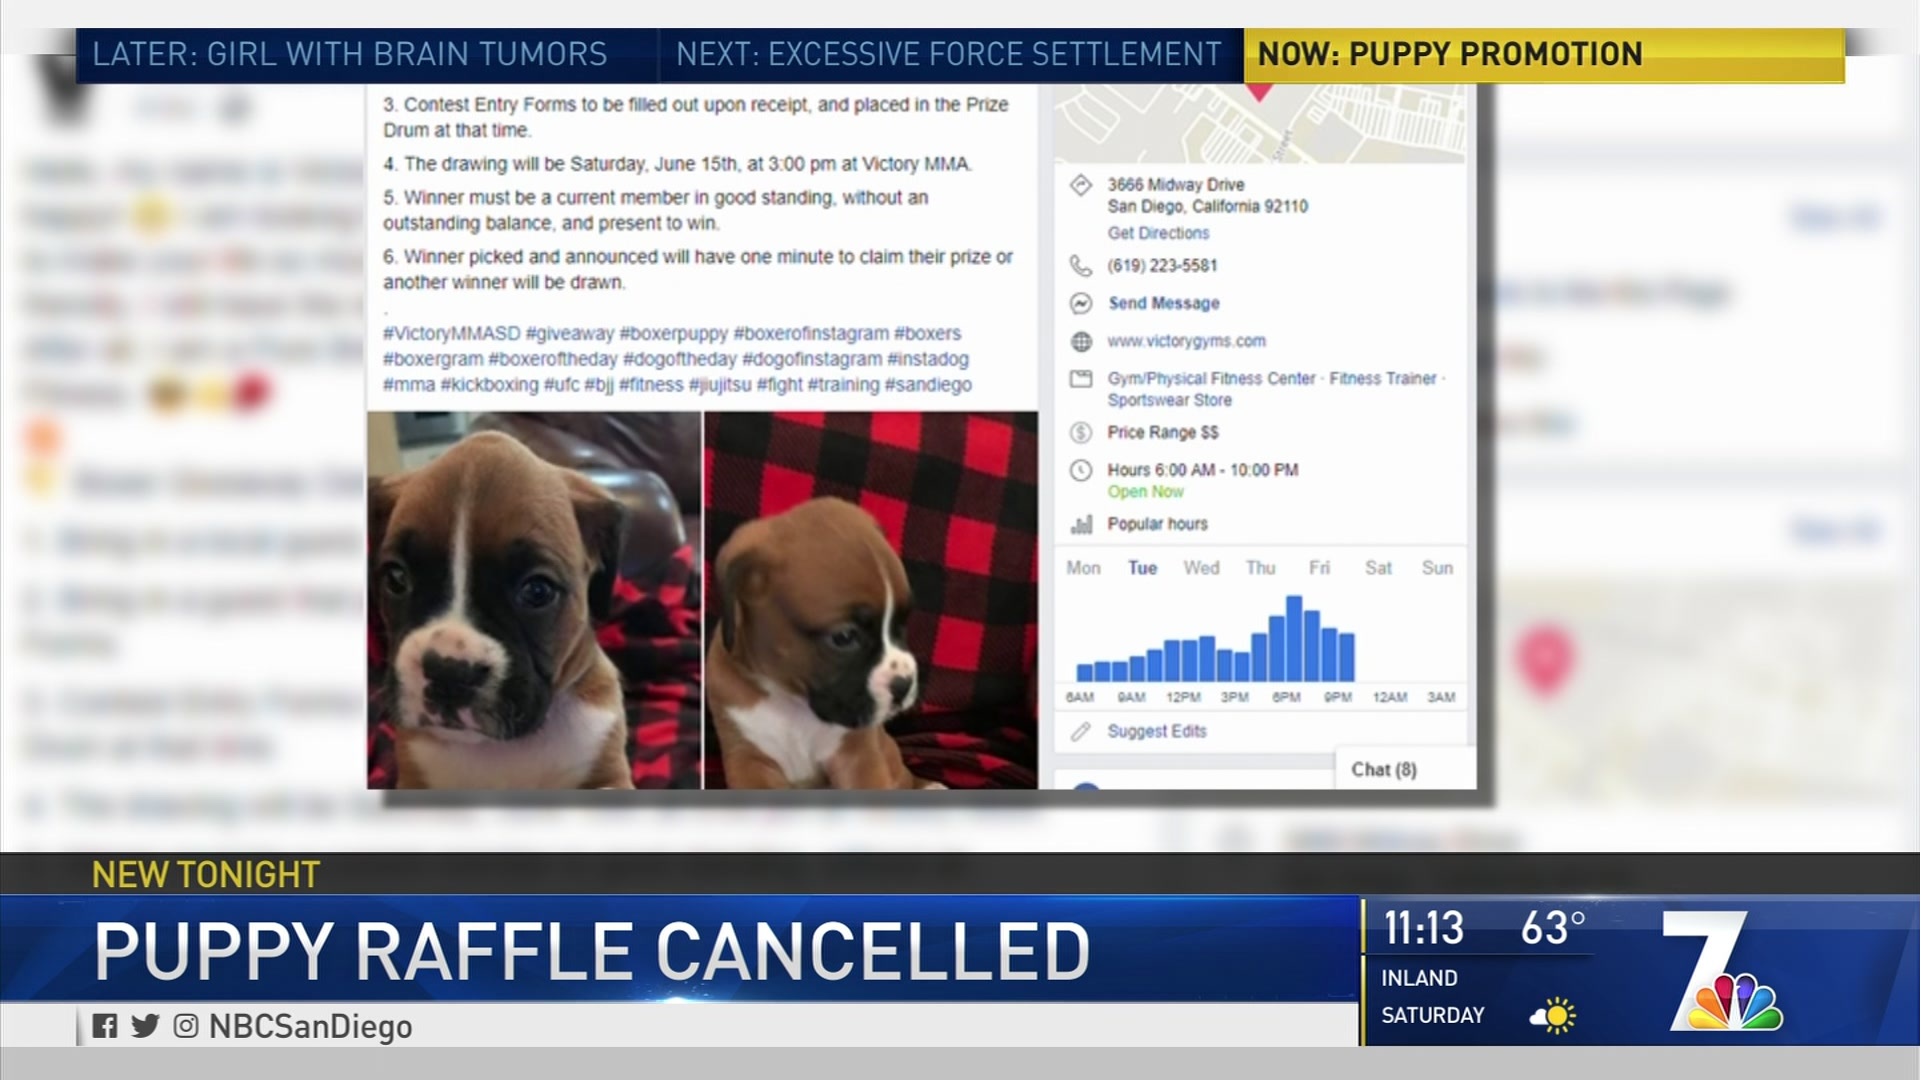 MMA Gym Stops Puppy Prize Raffle After Facing Community Backlash